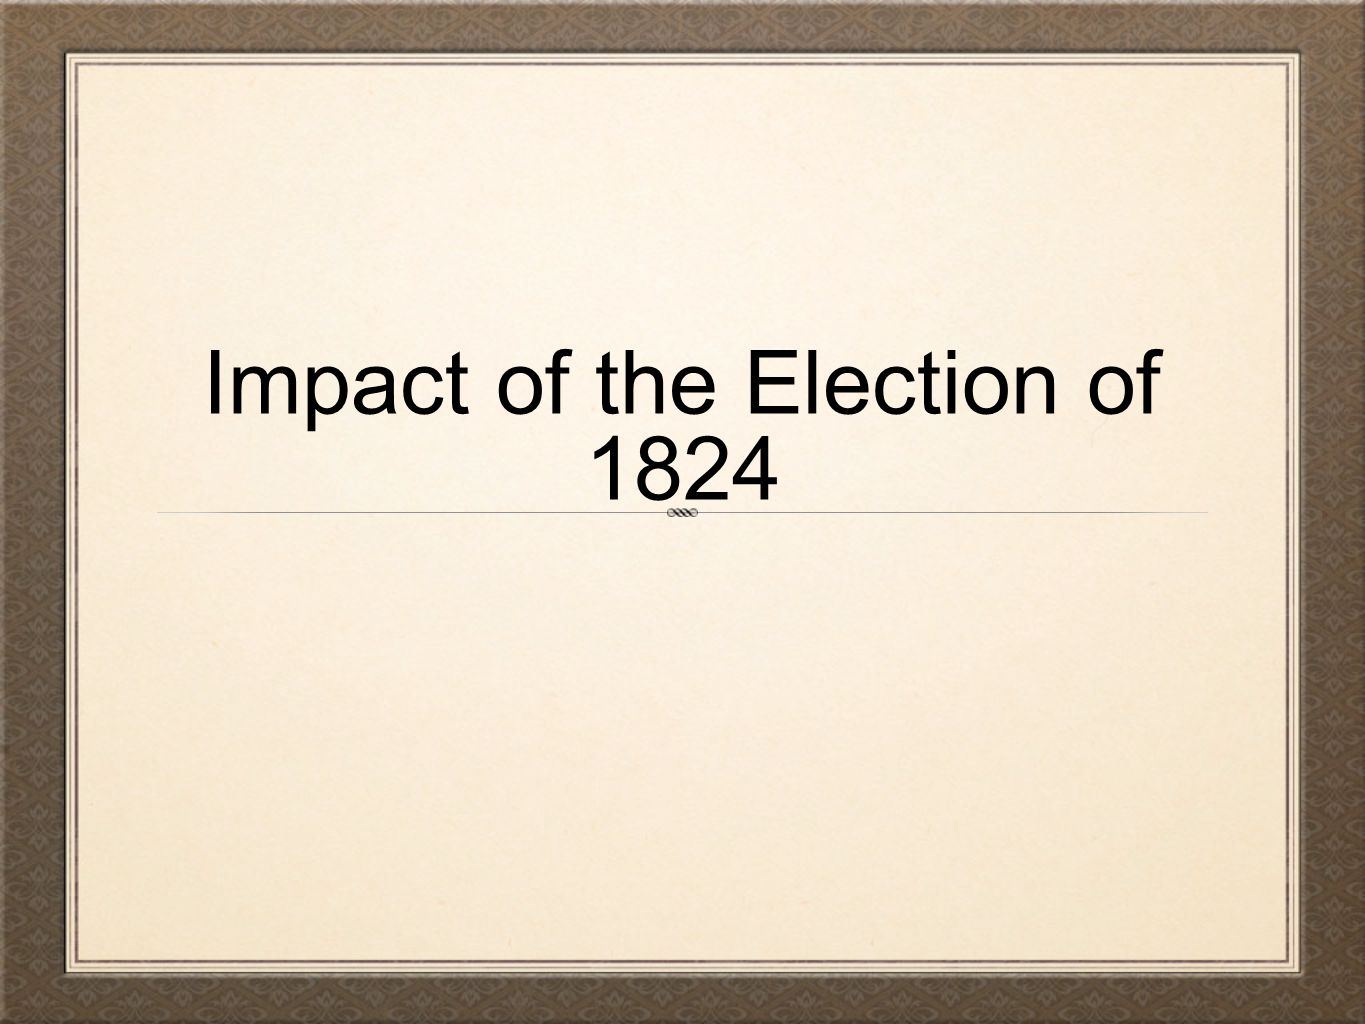 Impact of the Election of 1824